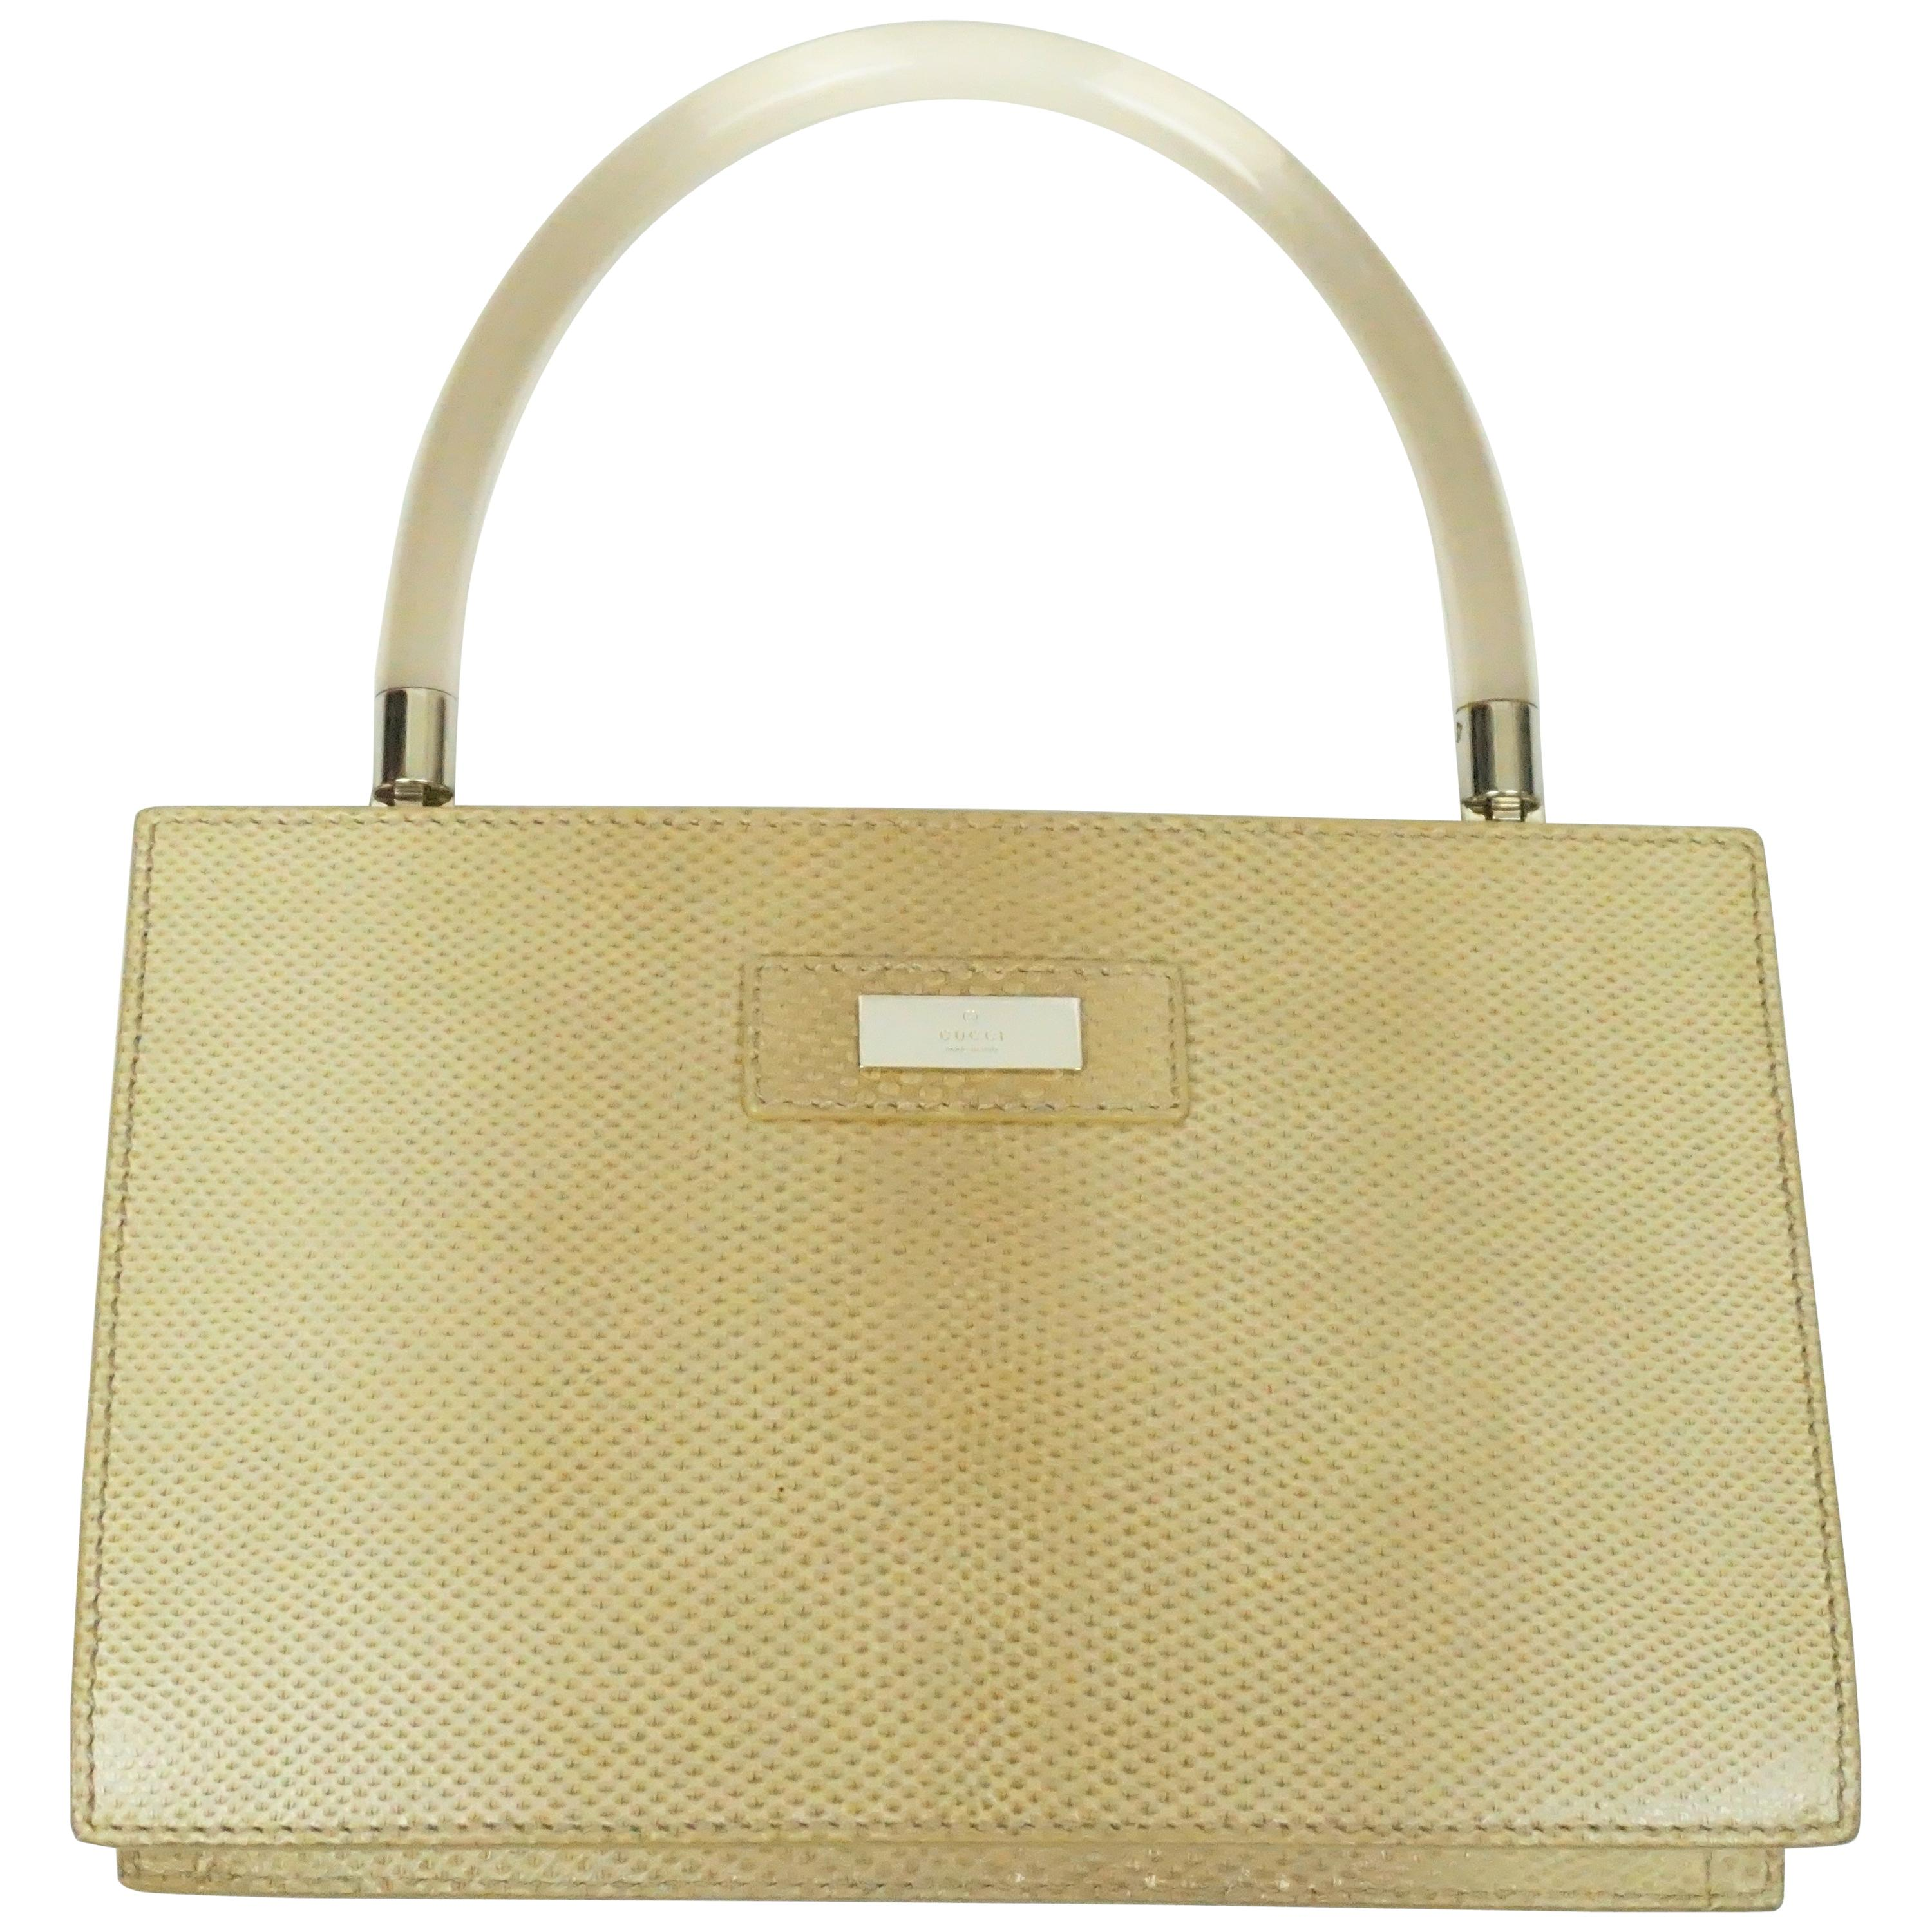 a0e57e94b6d4 Gucci Tan Lizard Purse w/ Plastic Handle at 1stdibs